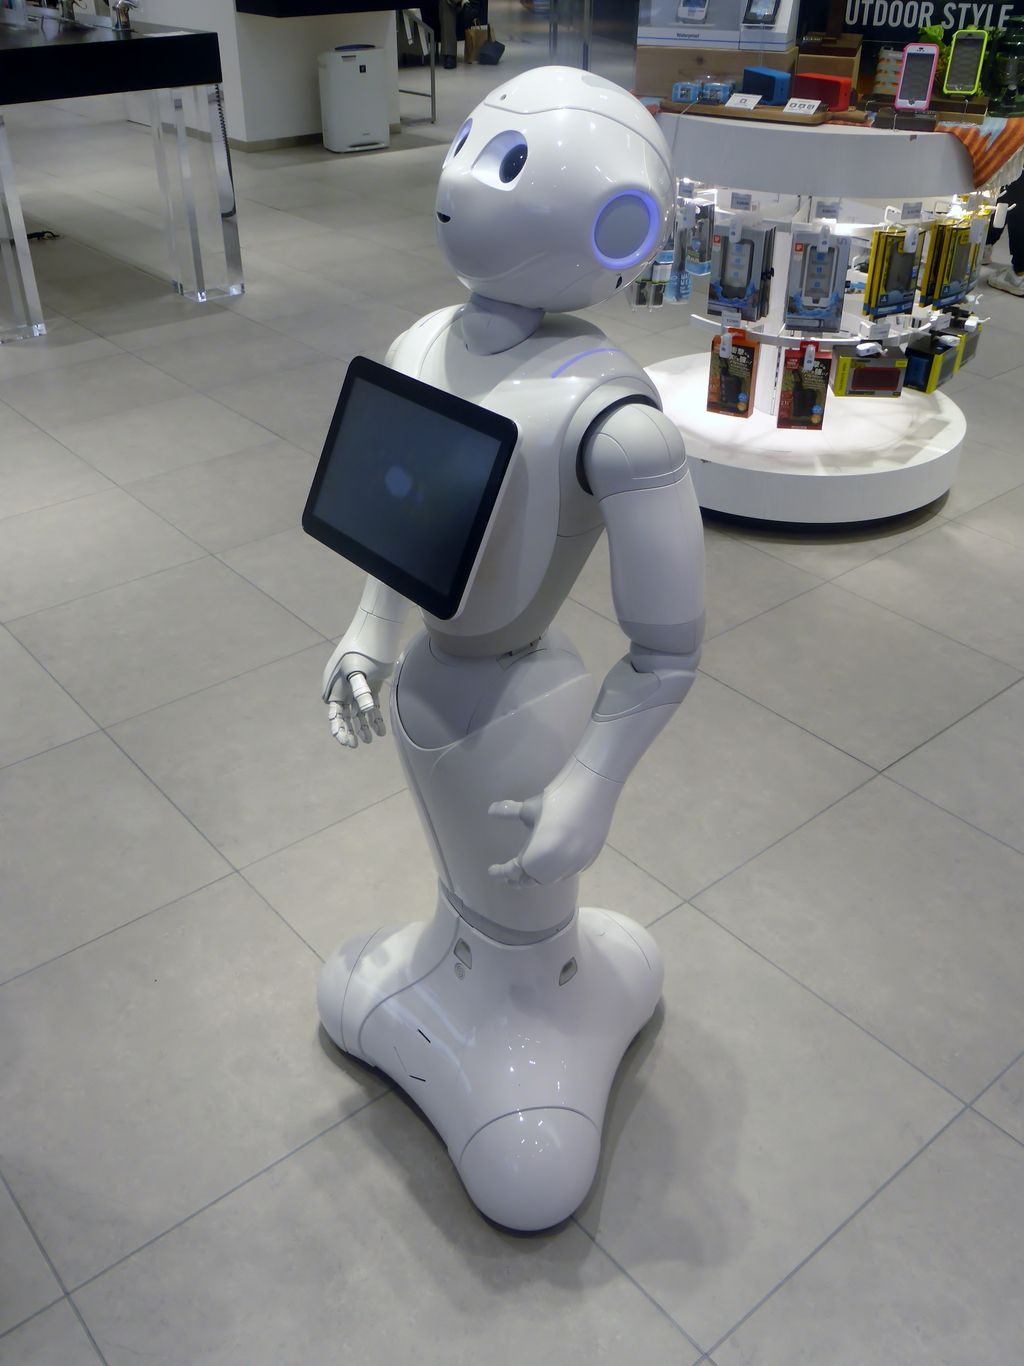 Pepper, a social companion robot, in a retail environment.